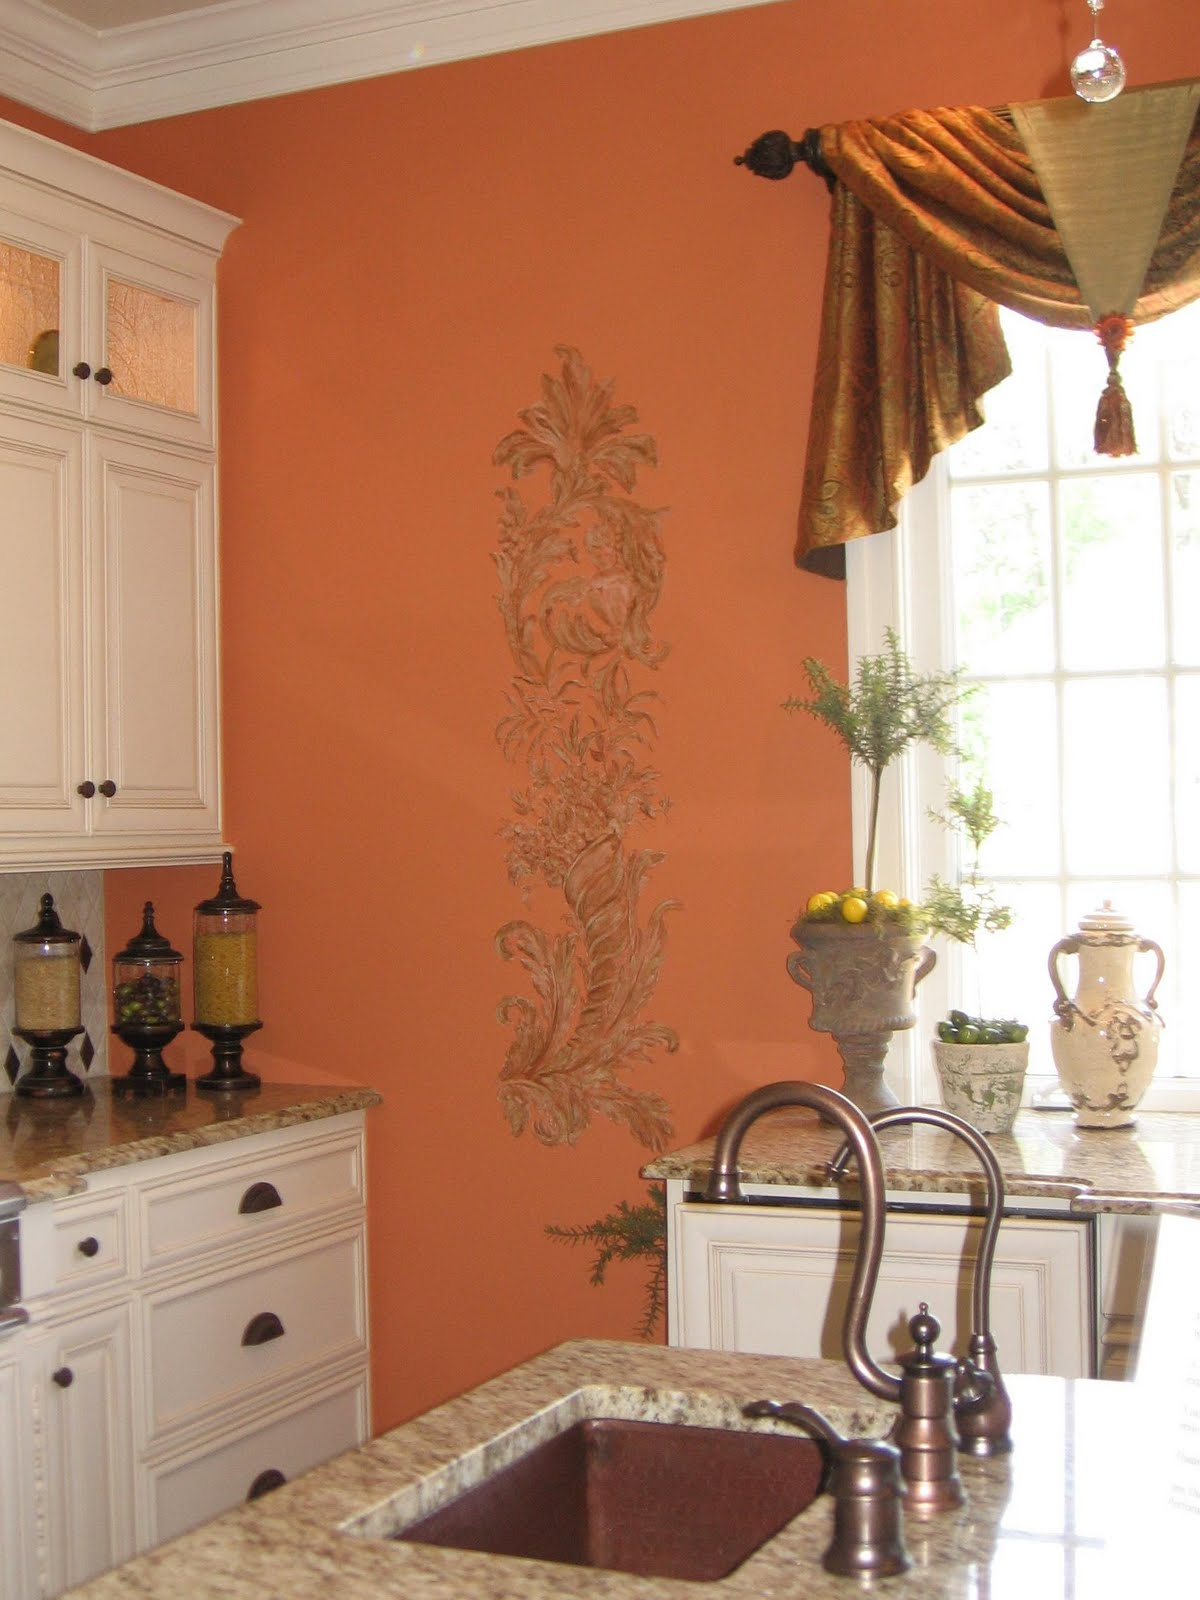 Deco wallpaper murals for What kind of paint to use on kitchen cabinets for graffitti wall art